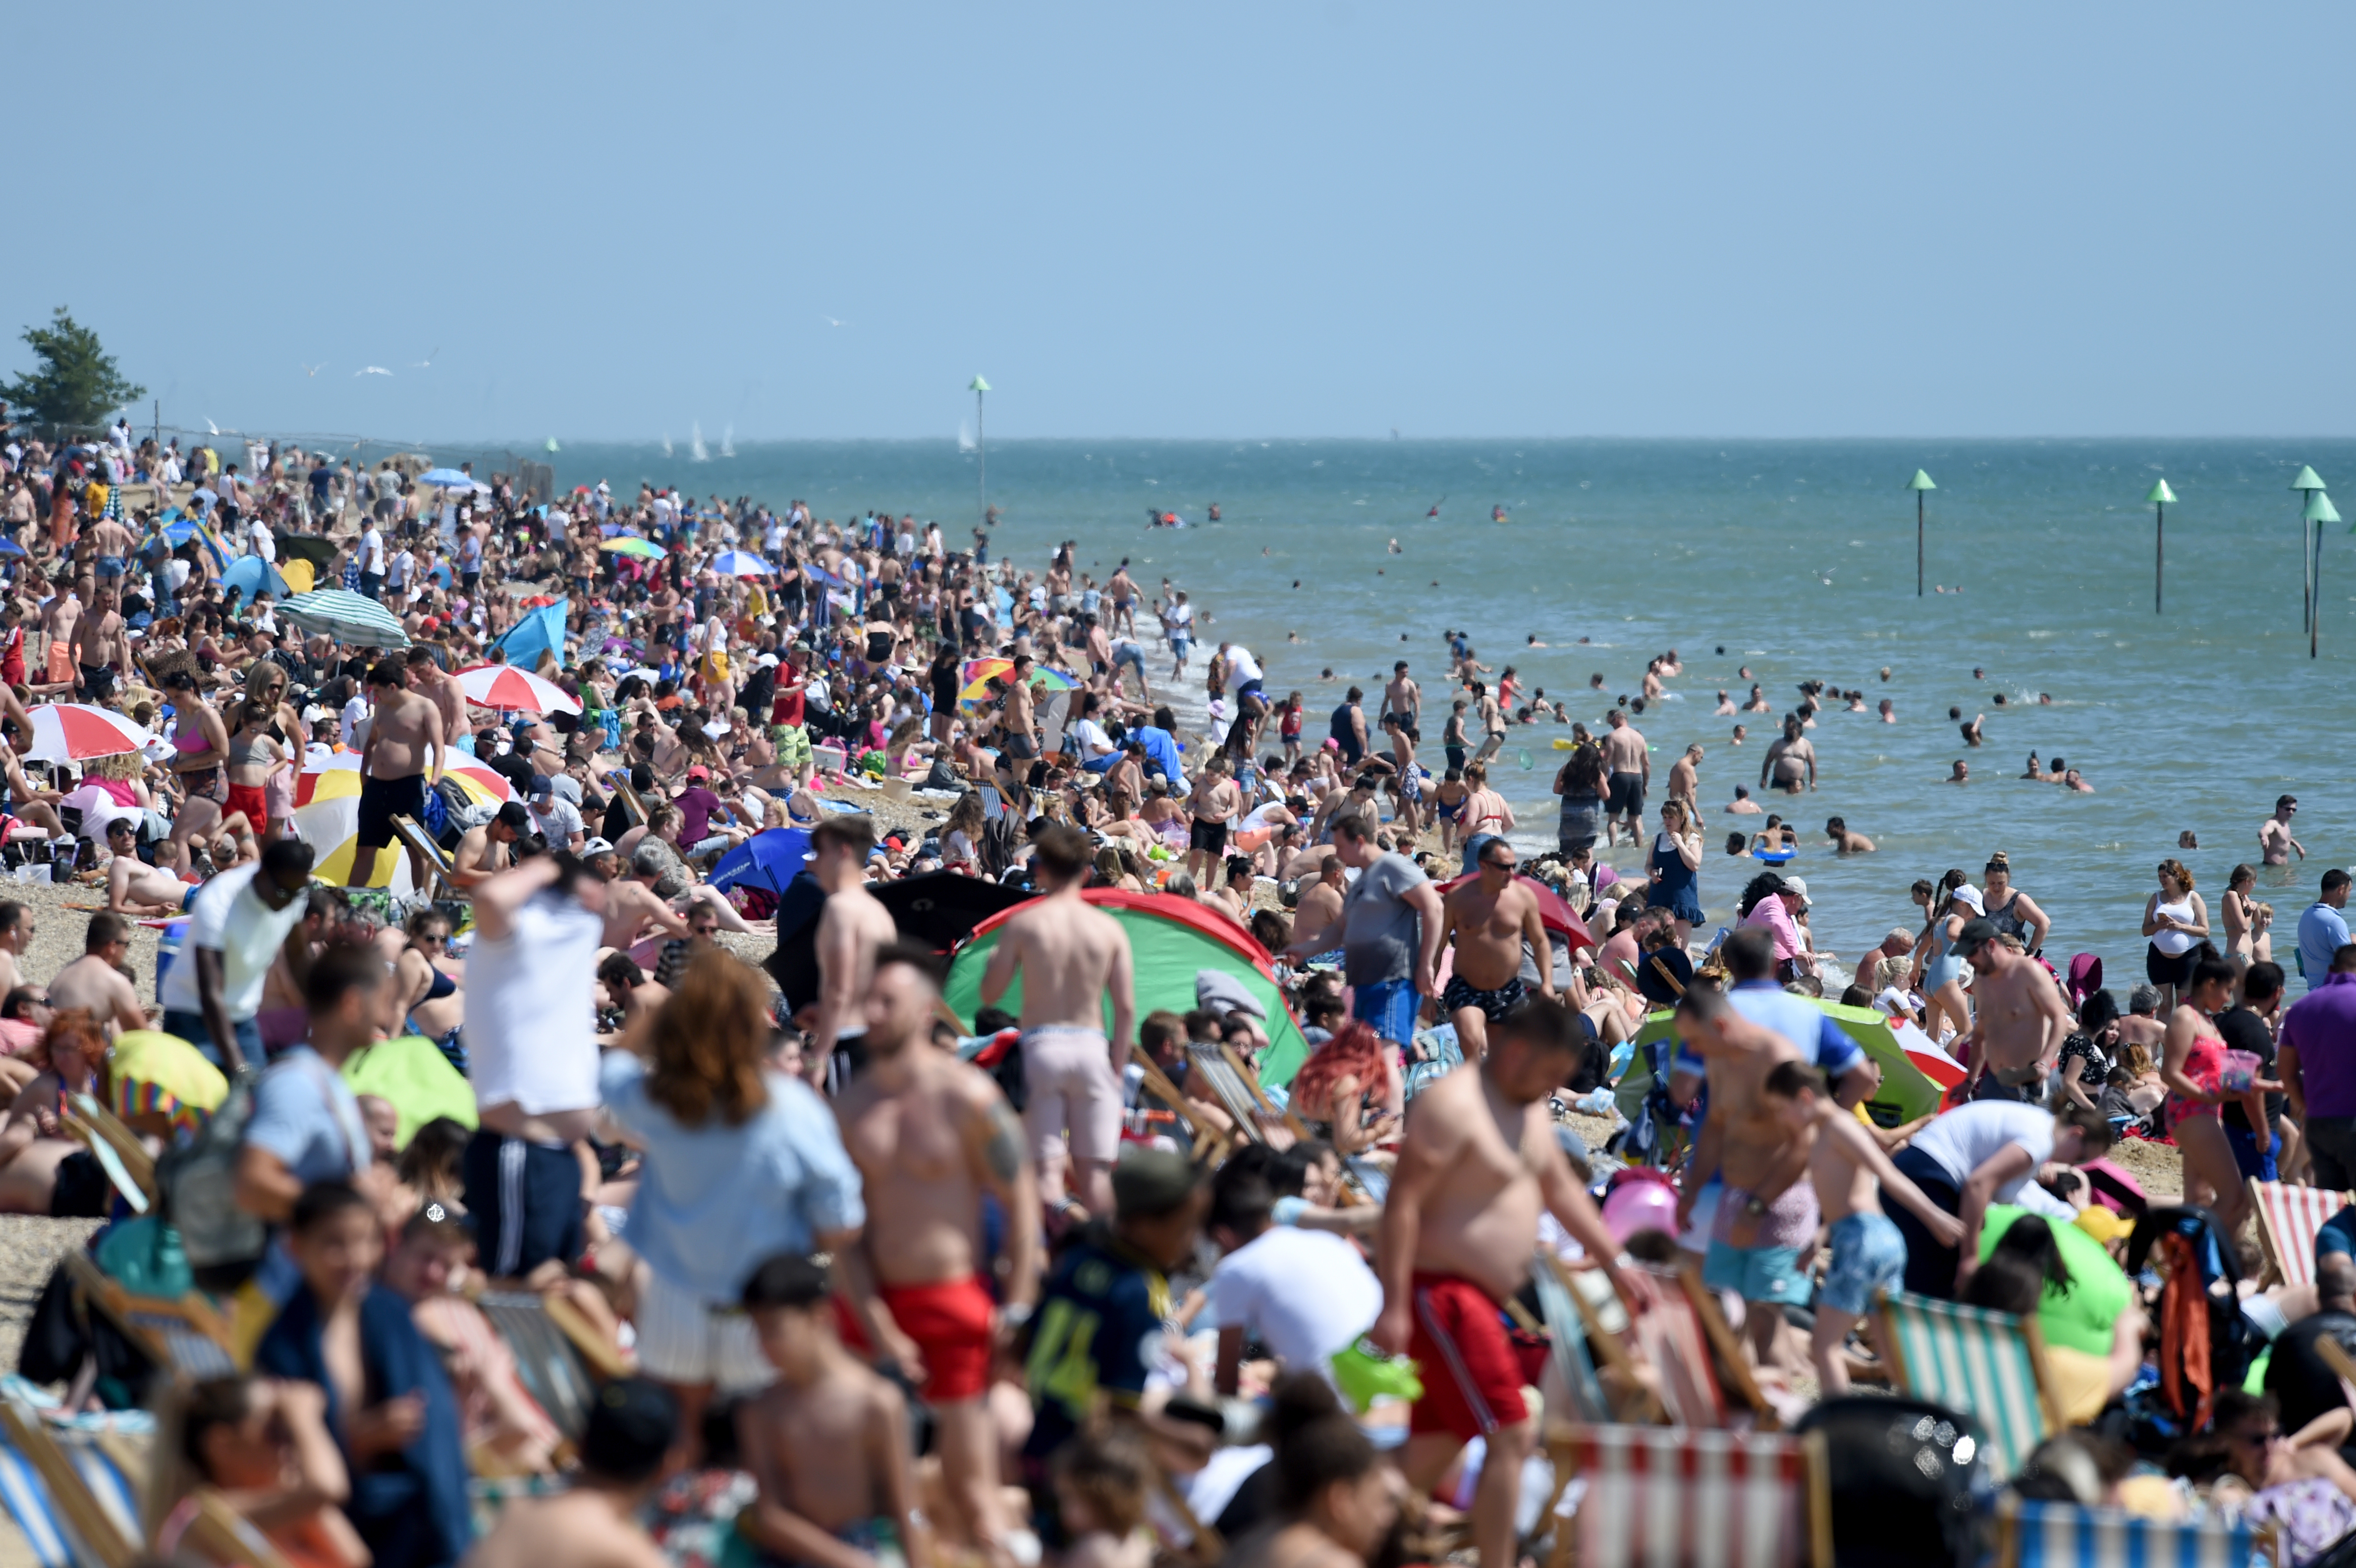 SOUTHEND-ON-SEA, UNITED KINGDOM - MAY 25: People are seen on the beach amid coronavirus (Co-vid 19) pandemic on May 25, 2020 in Southend-On-Sea, United Kingdom. (Photo by Kate Green/Anadolu Agency via Getty Images)